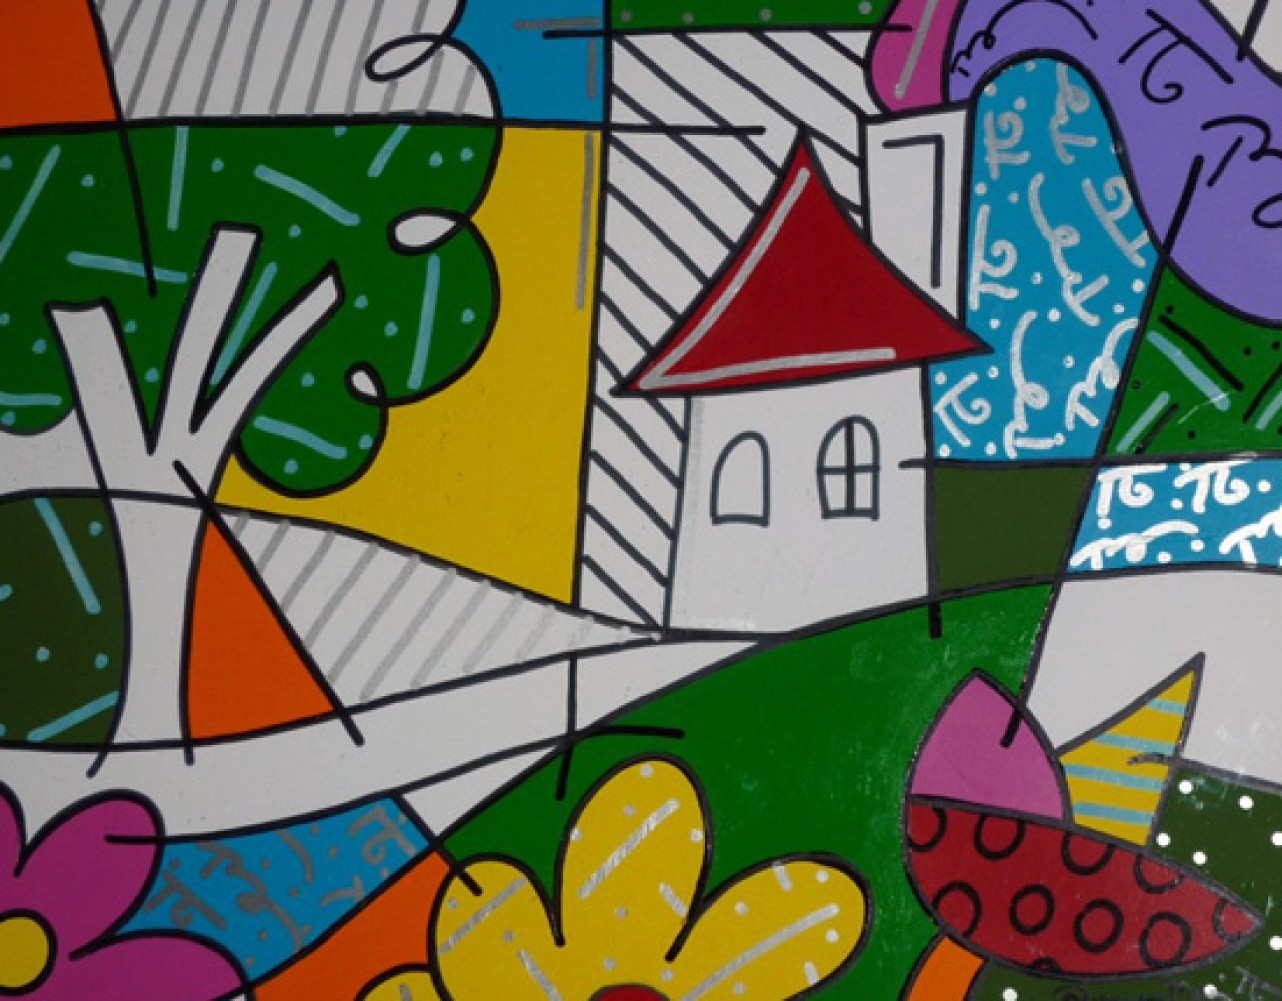 House With Tree on Left 1997 by Romero Britto